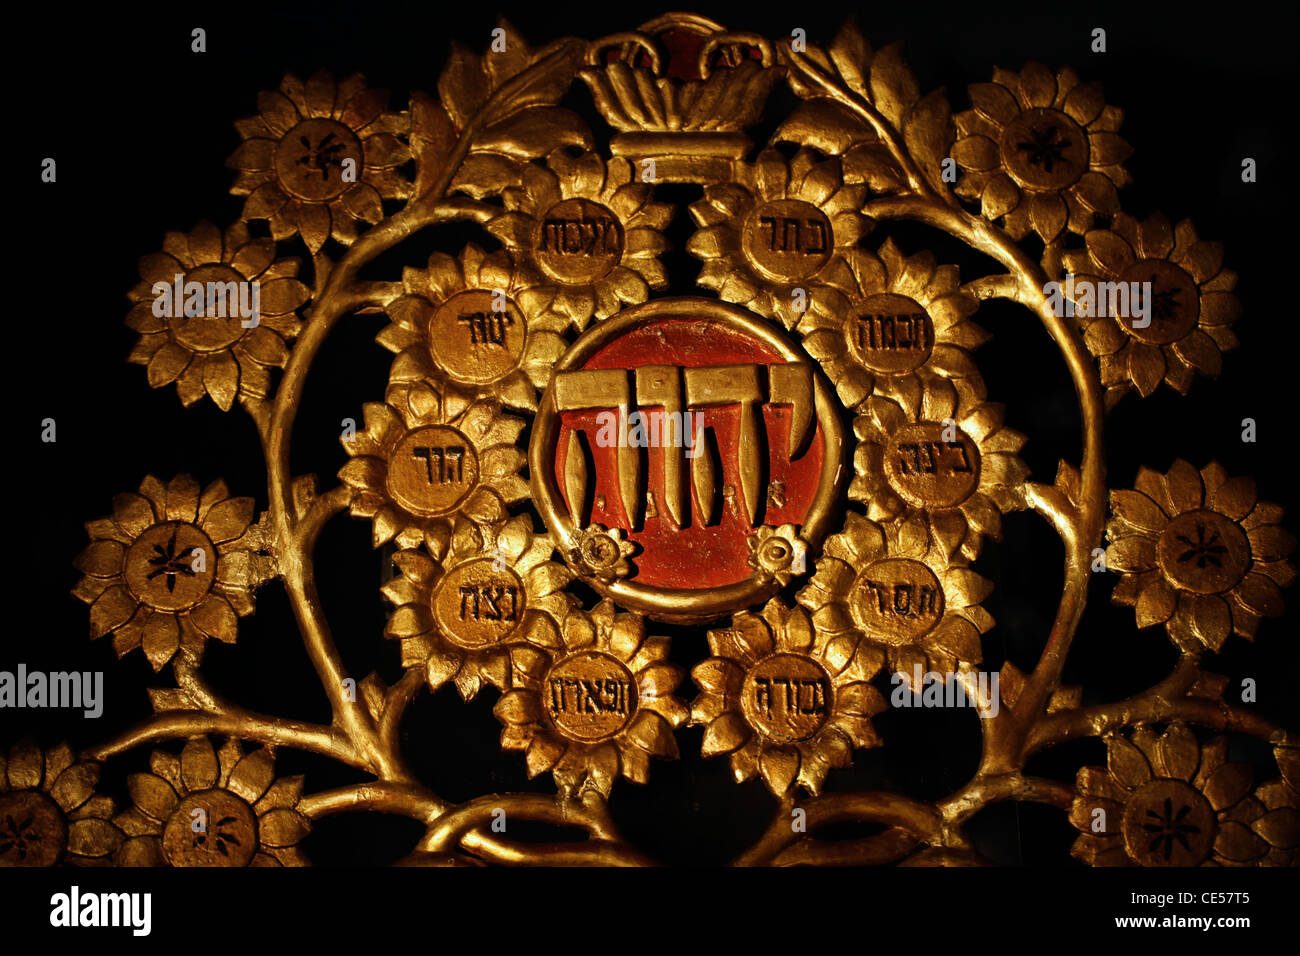 The name God in Hebrew decorates a Torah Ark closet which